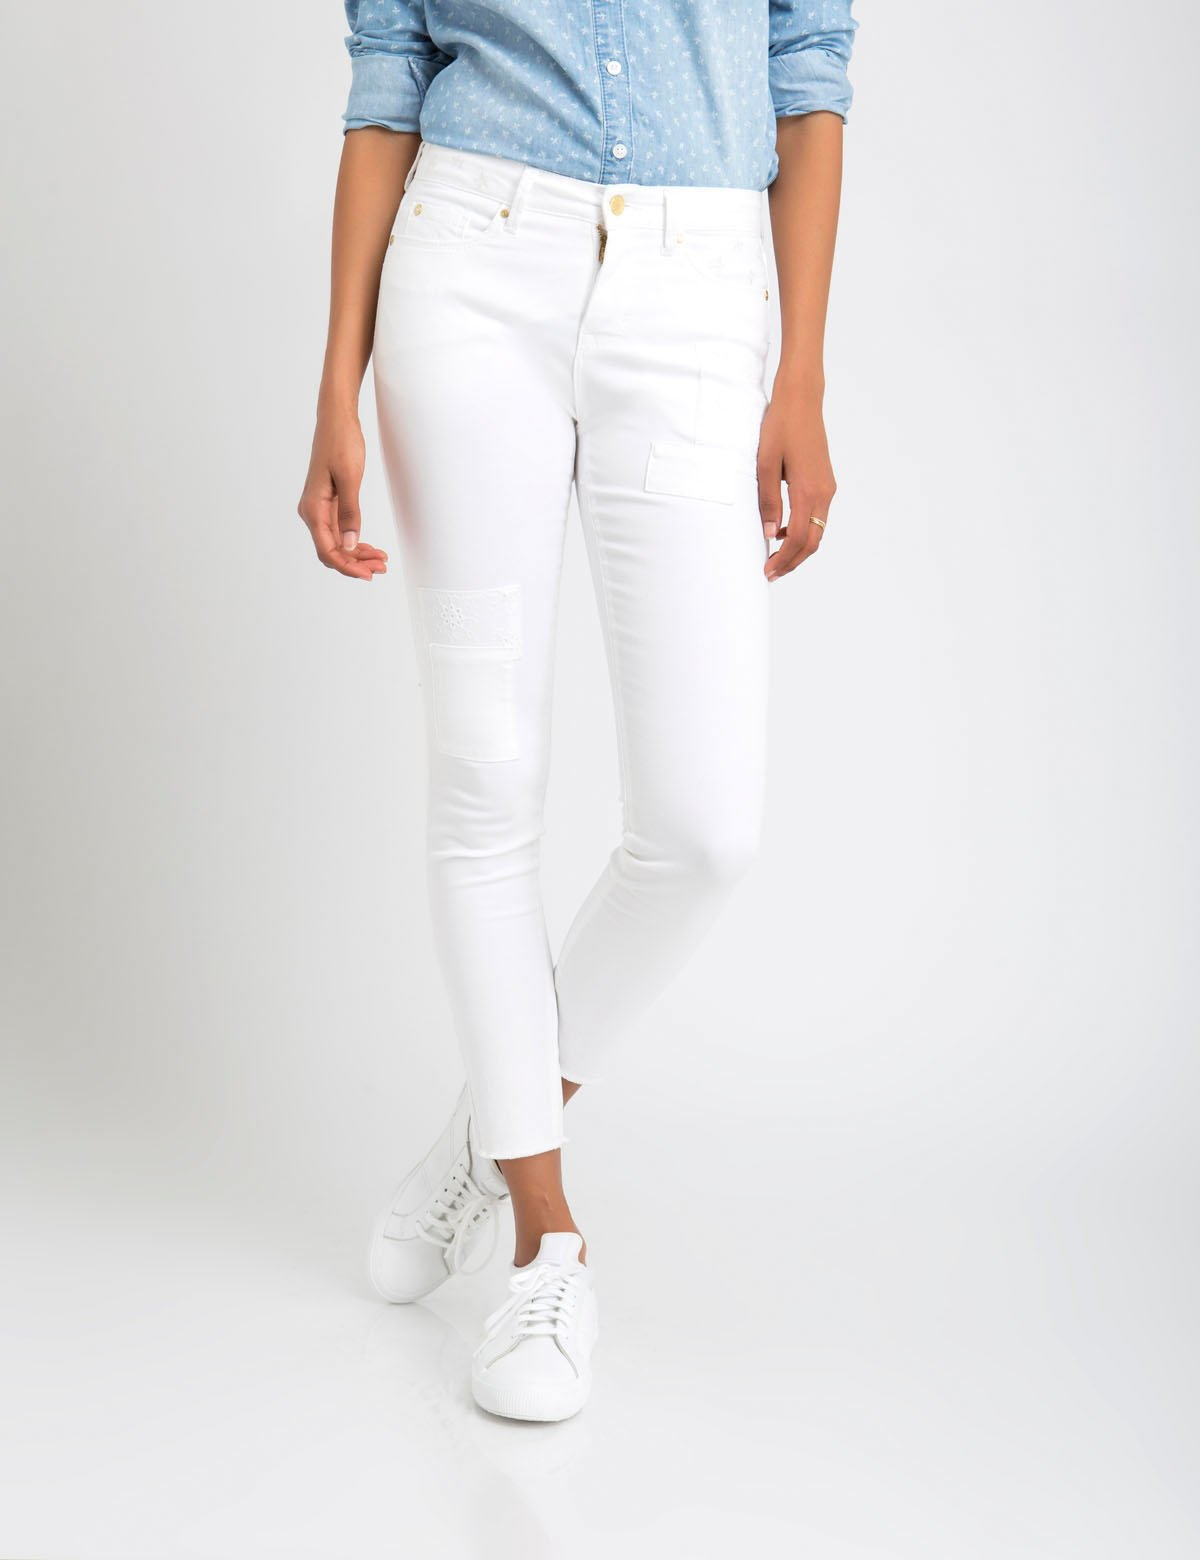 EYELET PATCH JEGGING CROP JEANS